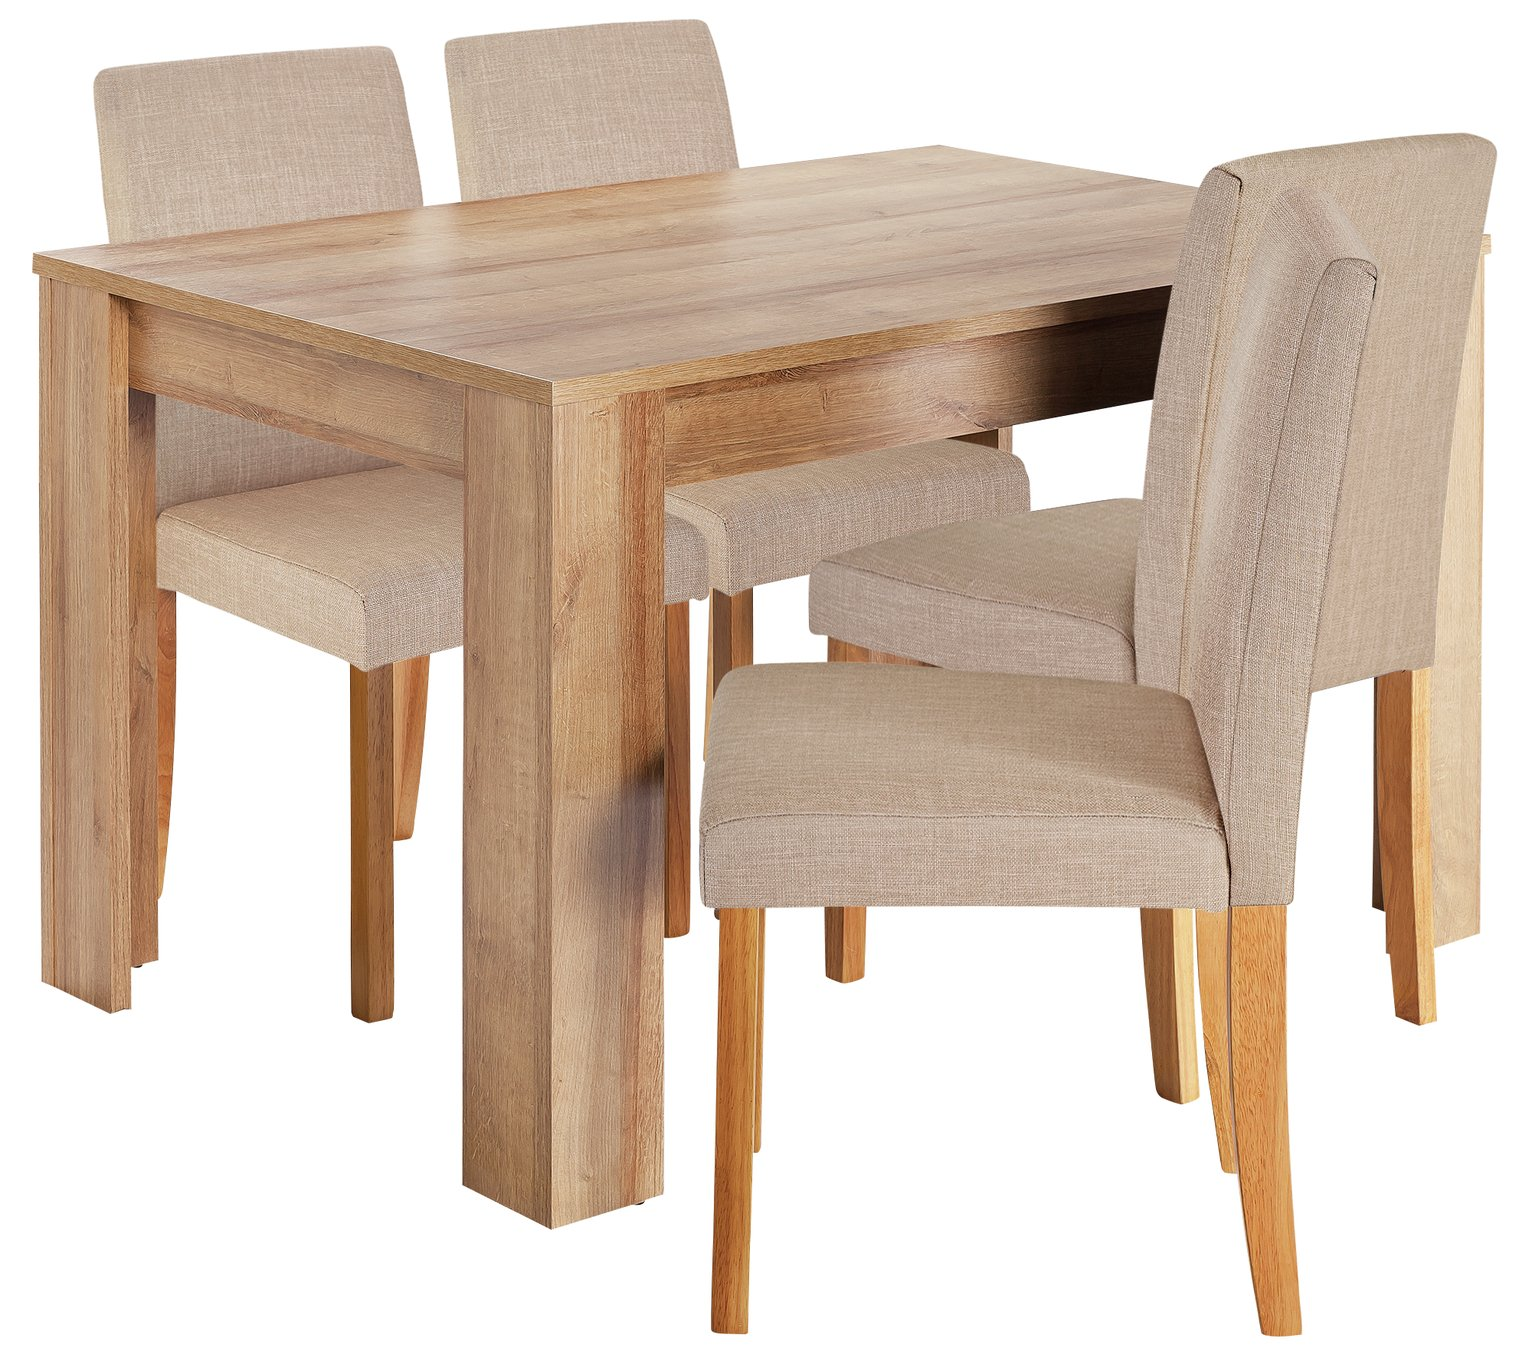 Image of HOME Miami Dining Table & 4 Chairs - Oatmeal